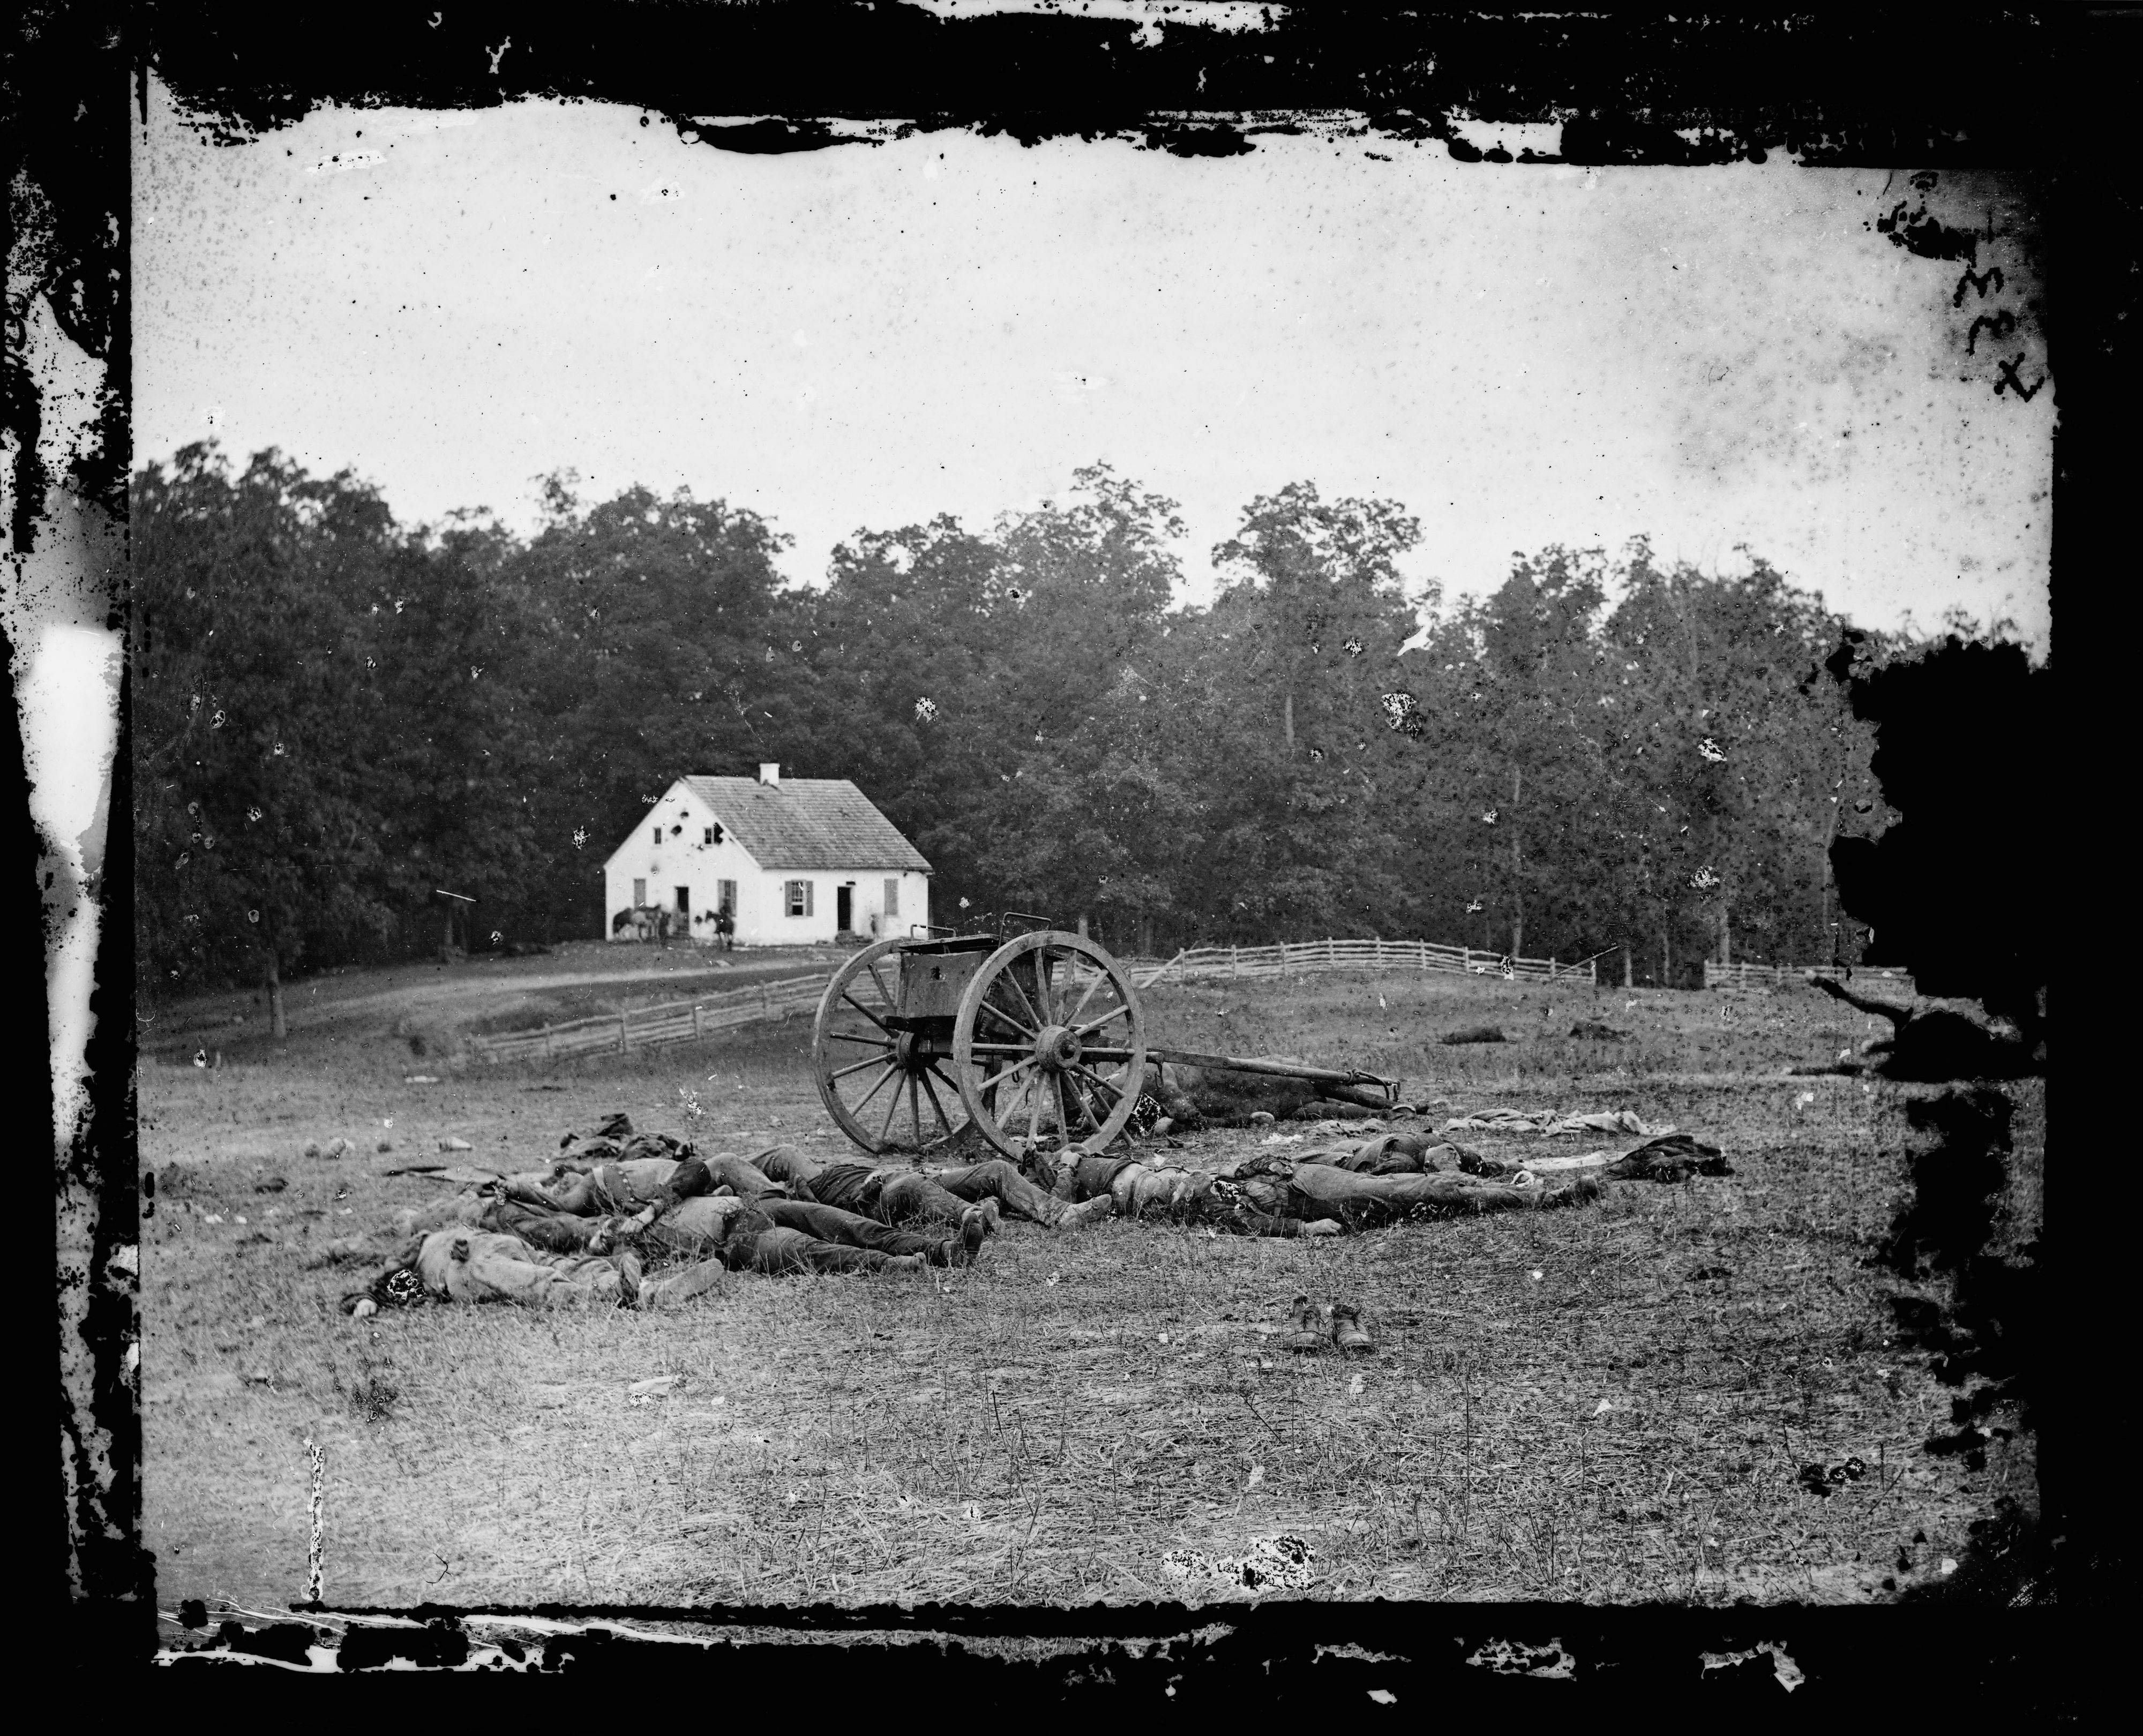 This 1862 photograph made available by the Library of Congress shows casualties from the Battle of Antietam near the church of the pacifist Dunker sect near Sharpsburg, Md.